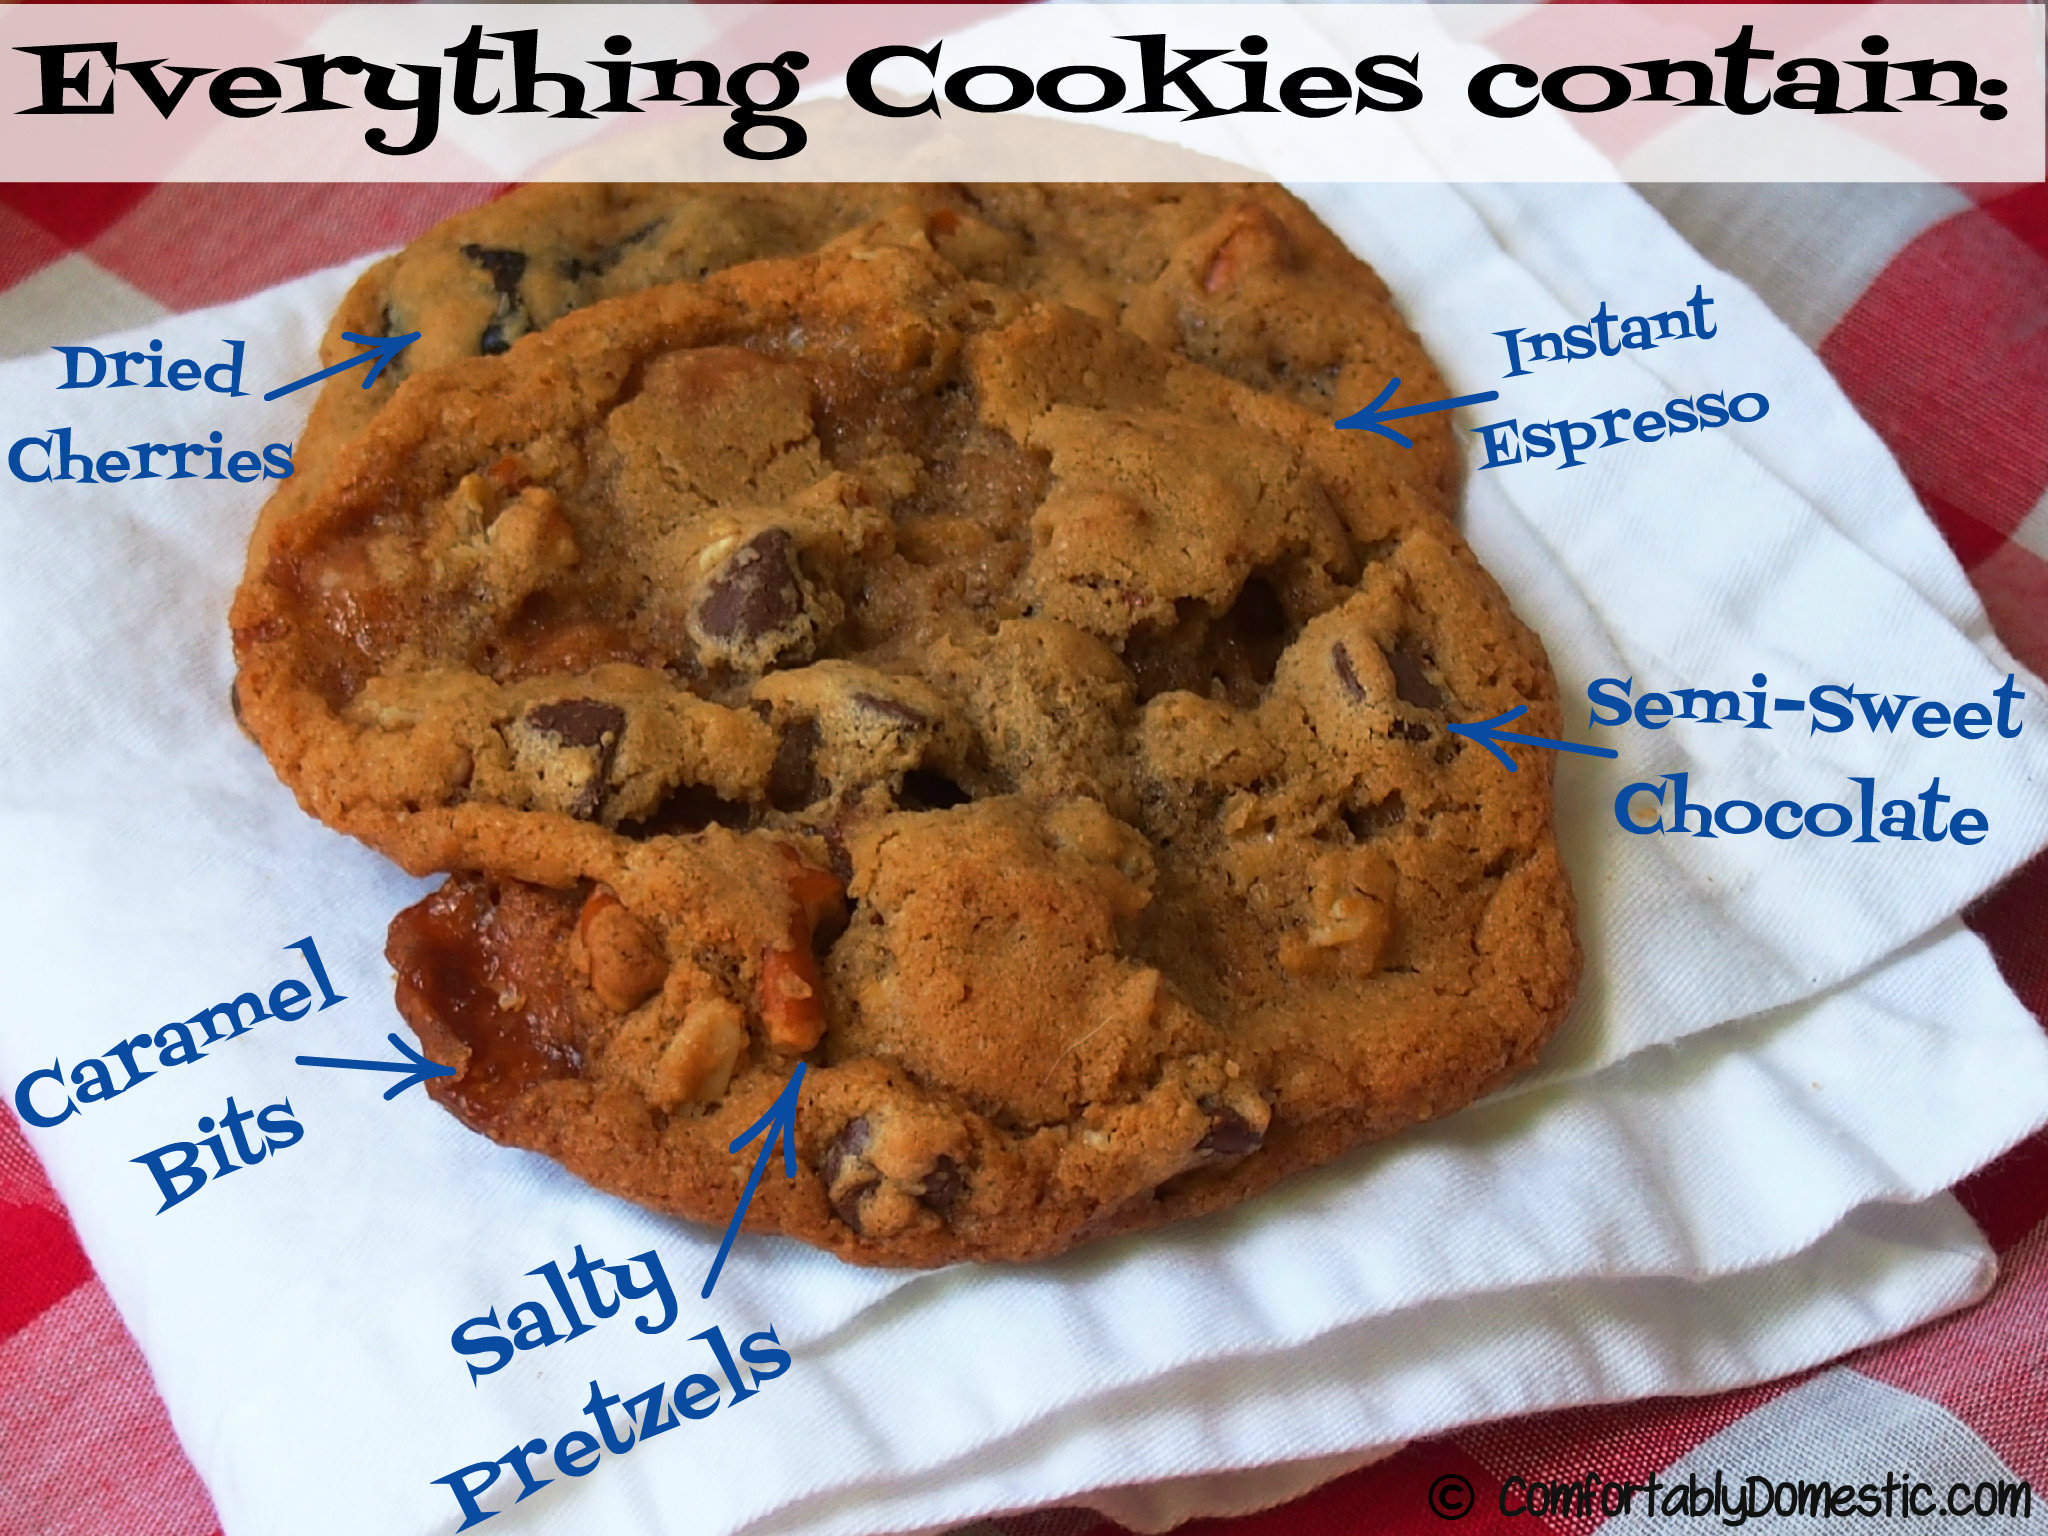 Everything But the Kitchen Sink Cookies fortably